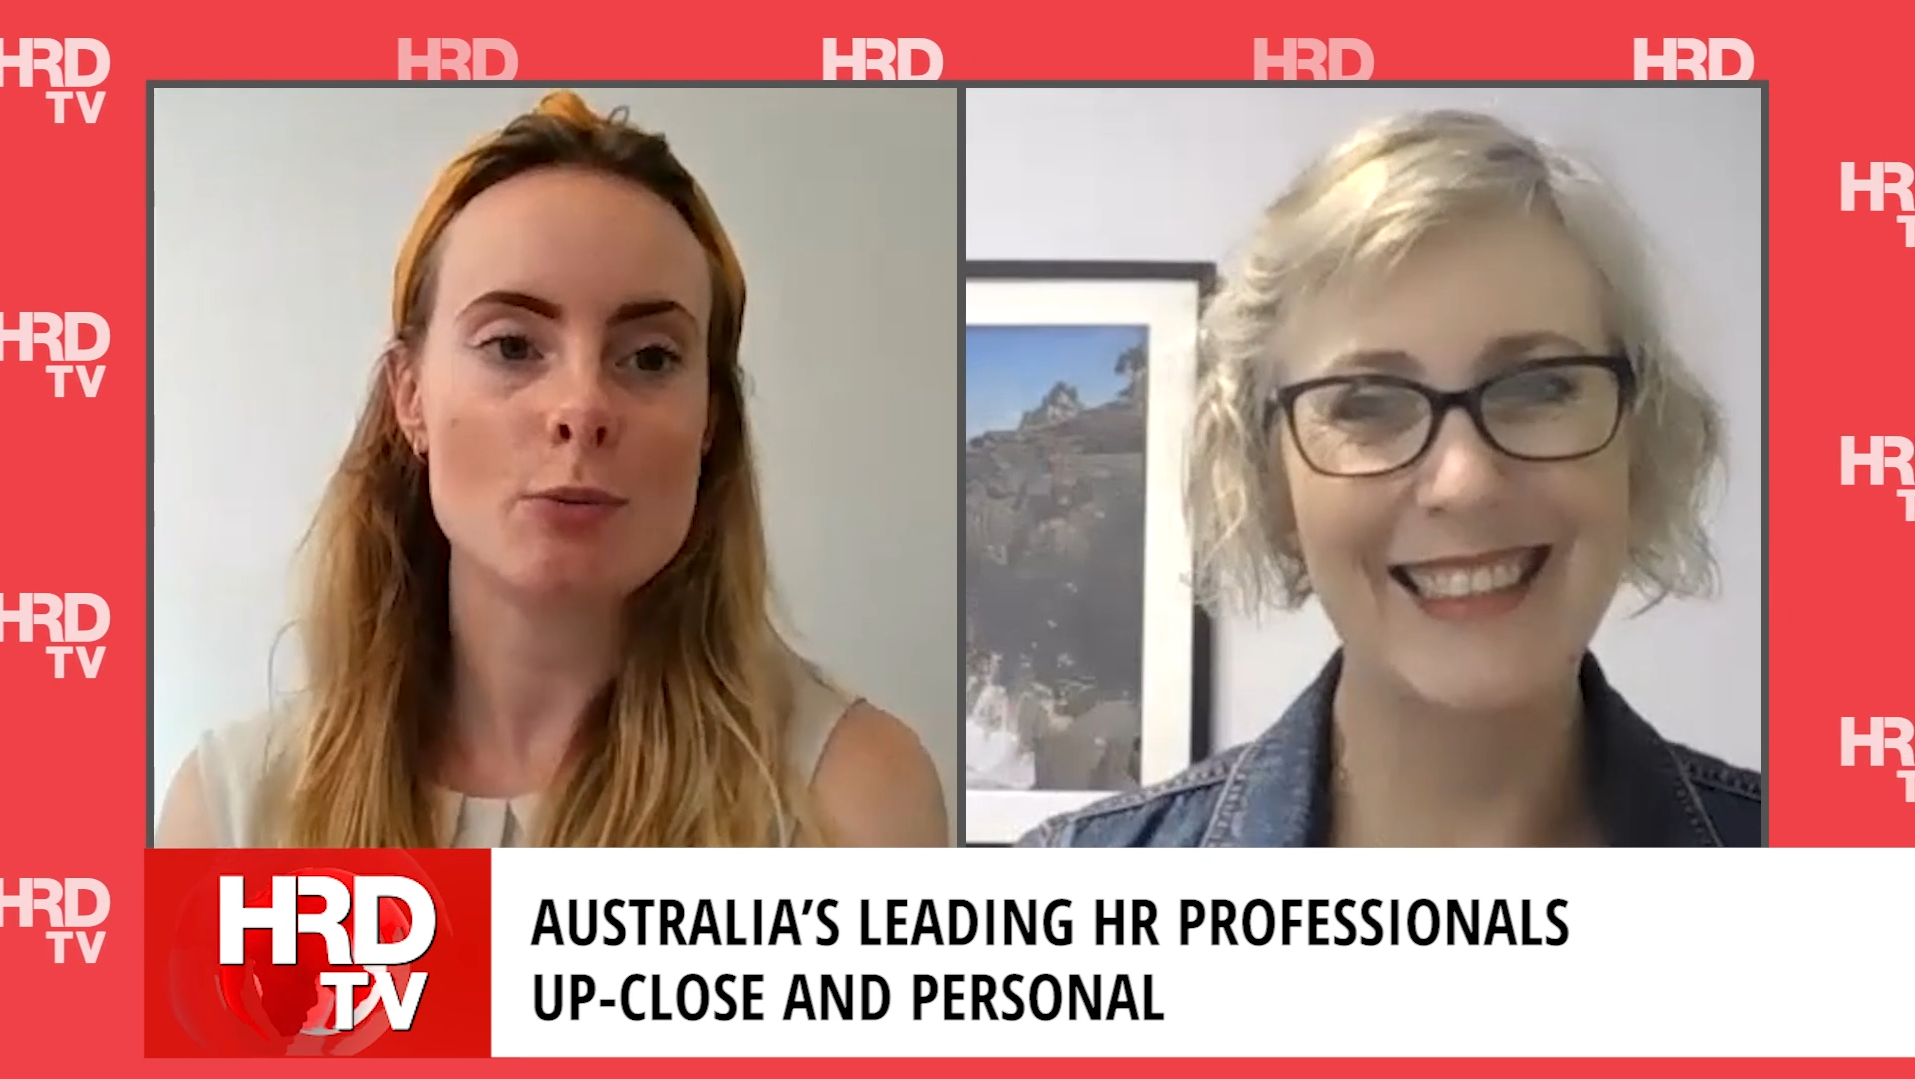 WATCH: What does HR's future look like?